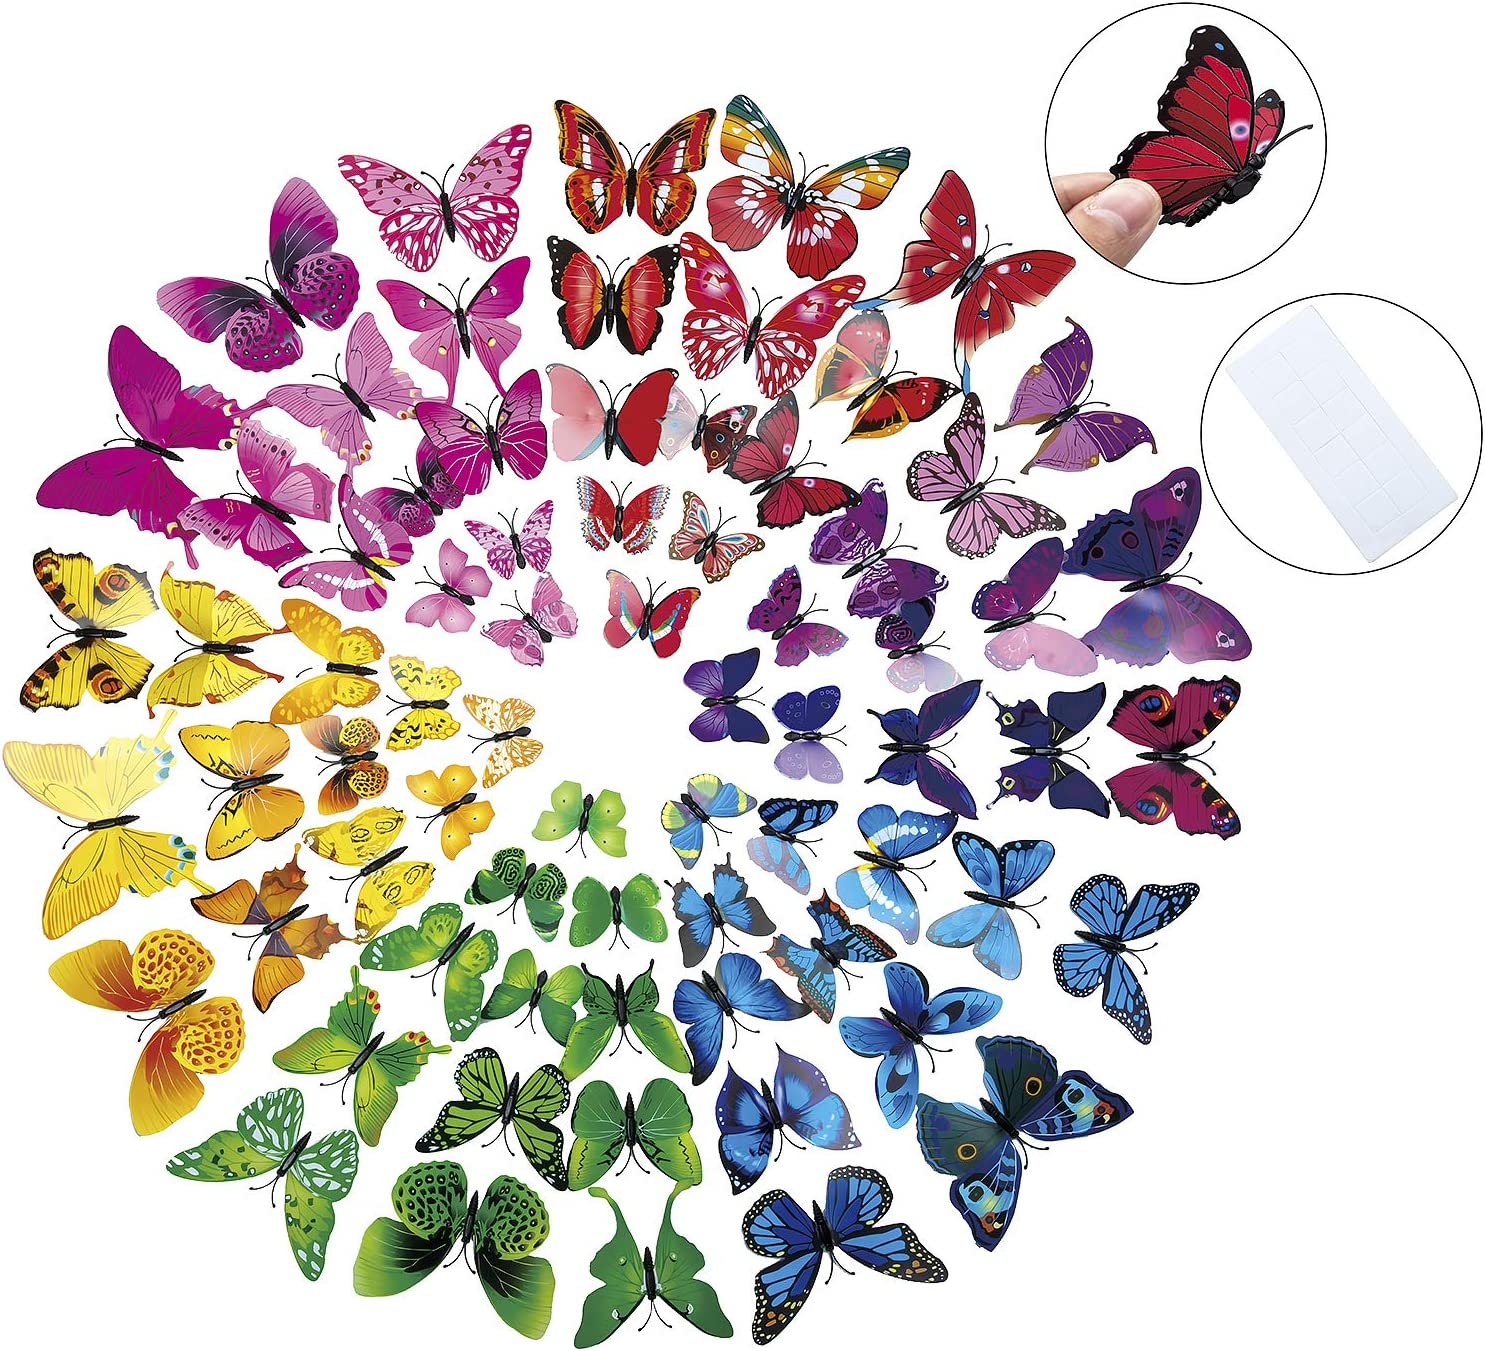 CLOSEUS 84PCS 3D Butterfly Wall Stickers DIY Art Decor Colorful Decals for Nursery Classroom Kids Baby Bedroom Living Room Magnets And Sponge Glue